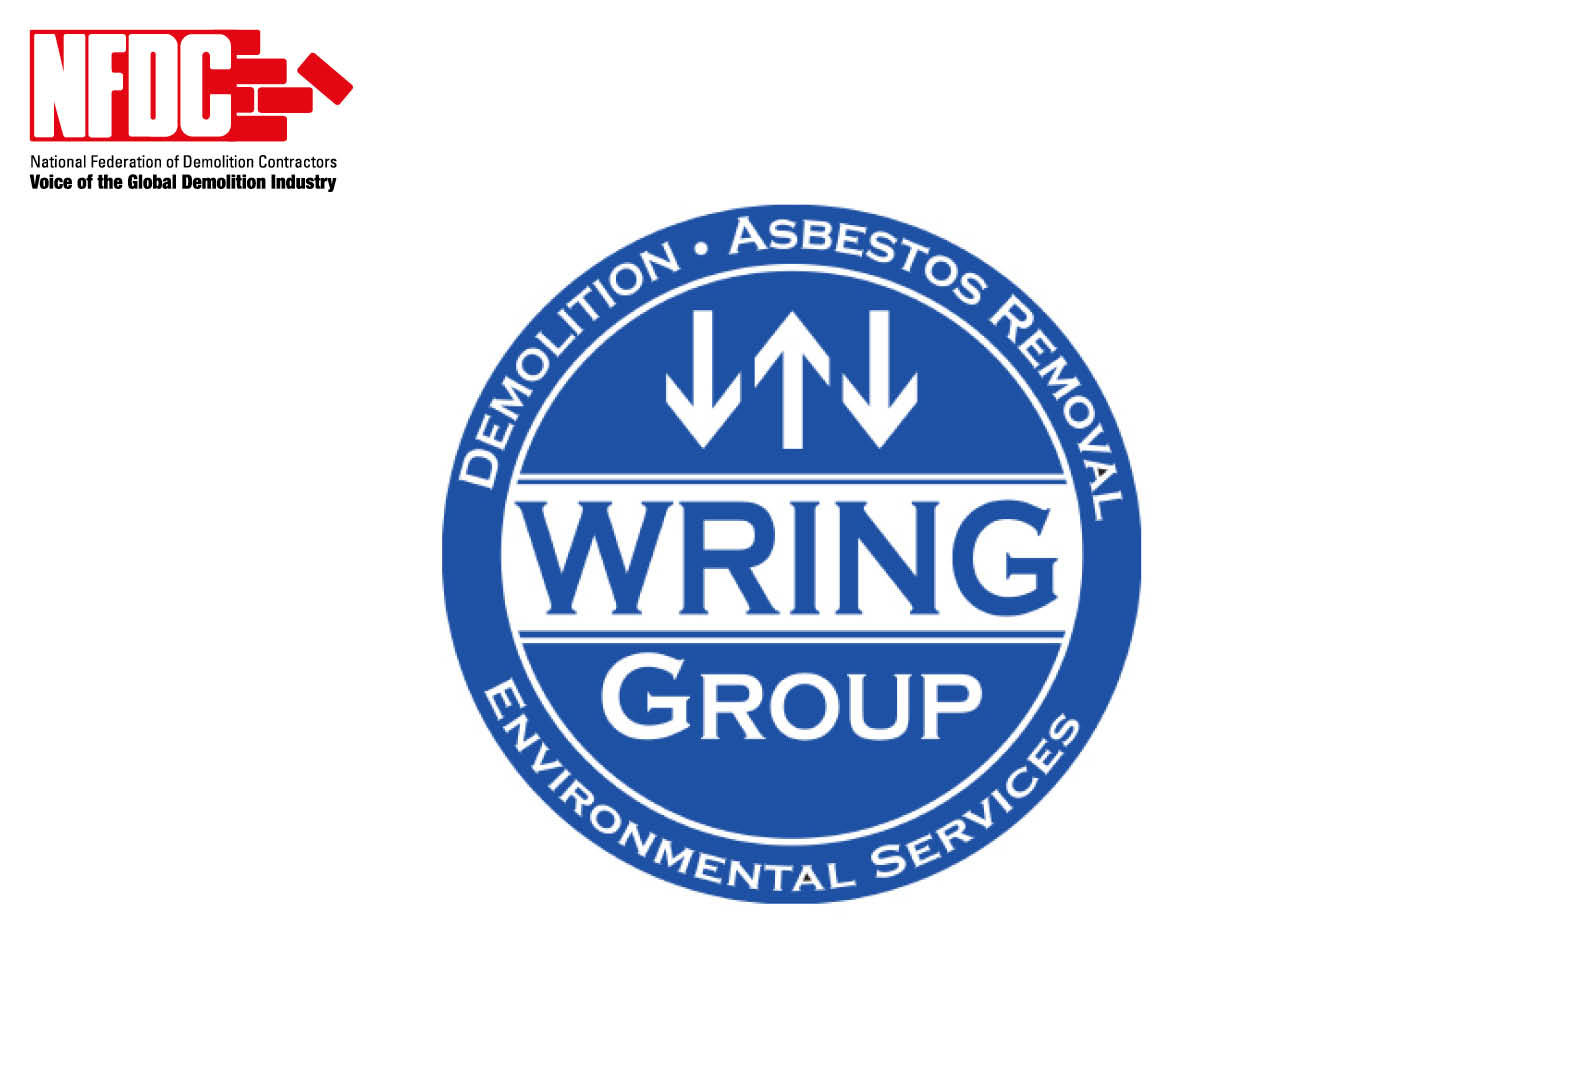 Wring Group